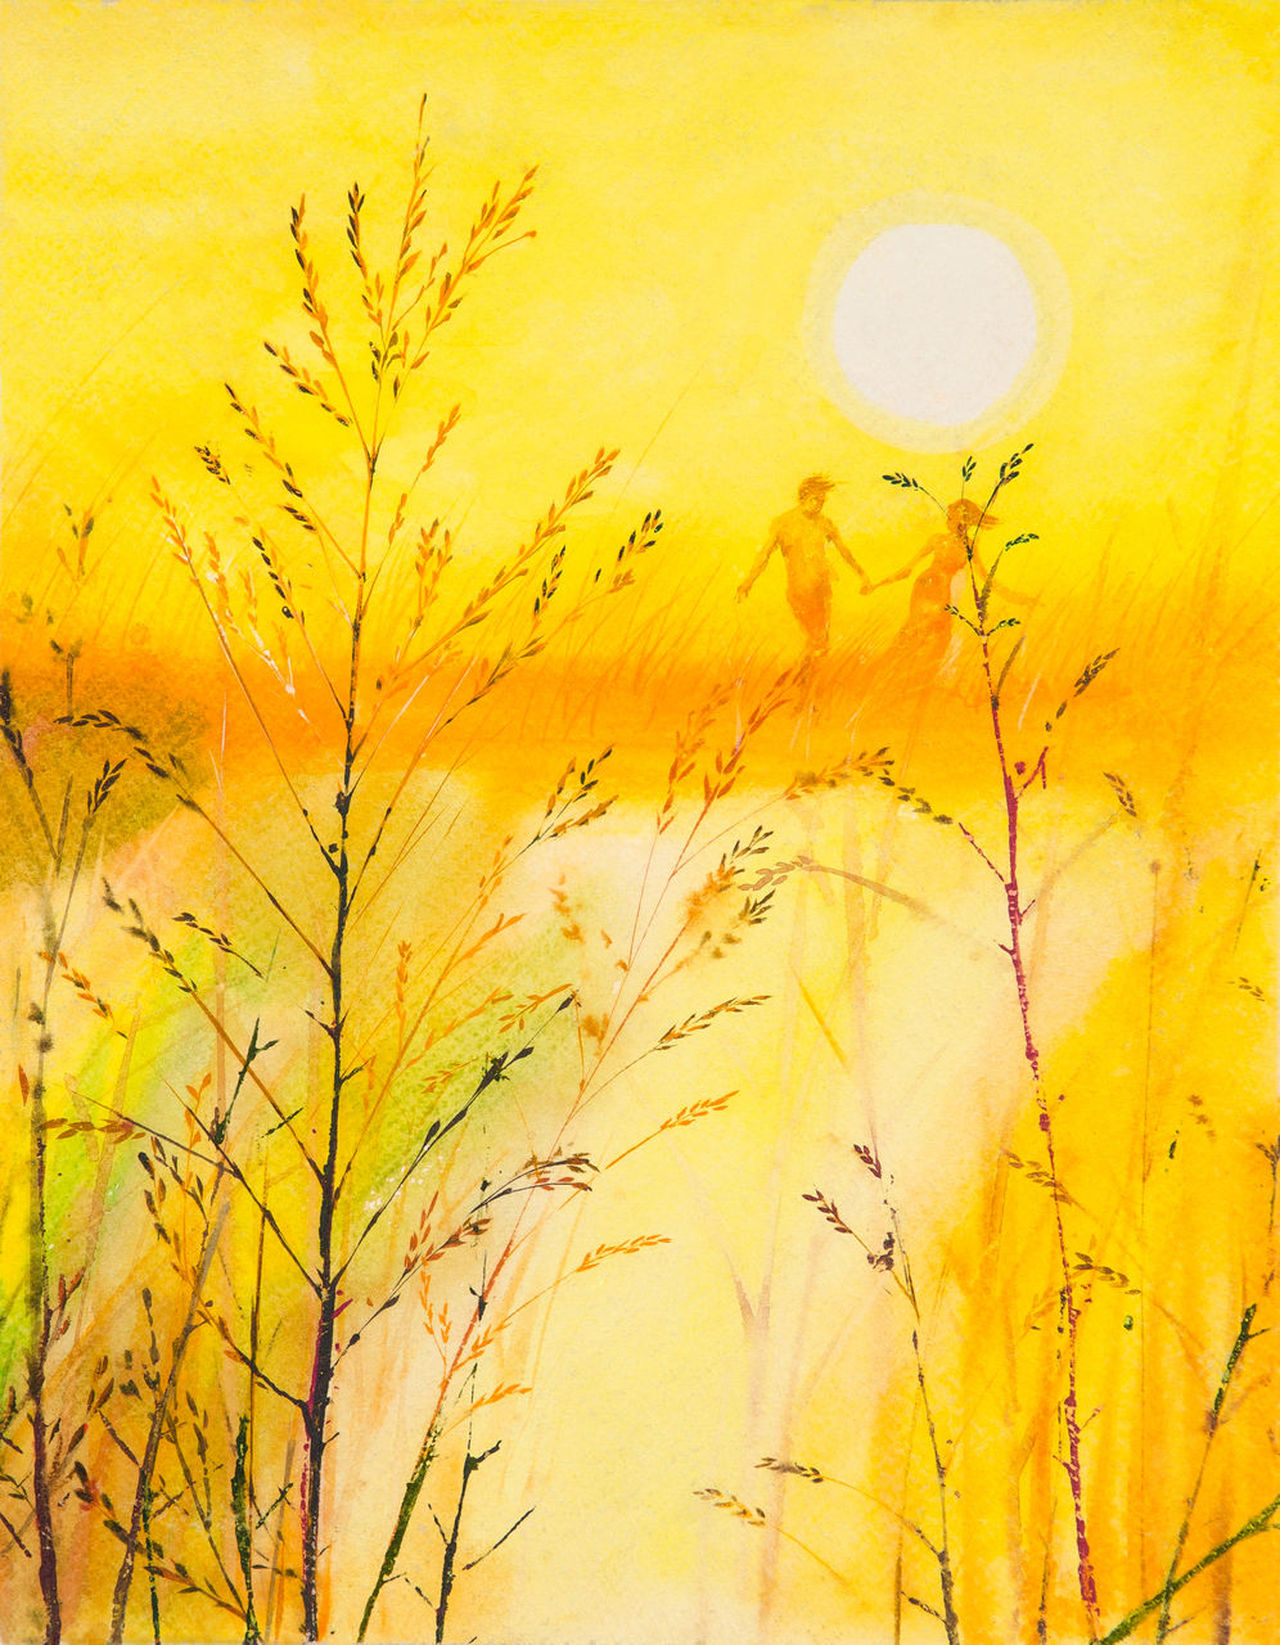 Watercolor illustration of a beautiful bright warm sunshine. Young couples, cling to the meadows with delight. Fun and cheerful like bird that squawks. Atmosphere in the blazing mid-summer. Aesthetic Couples Daylight First Love Freedom Happiness Hay Illustration Art Lovers Meadow Painting Art Pleasure Romance Scene Shades Of Warm Colors Summer Sunlight Sunset The Late Afternoon Vividness Yellow Tone Color